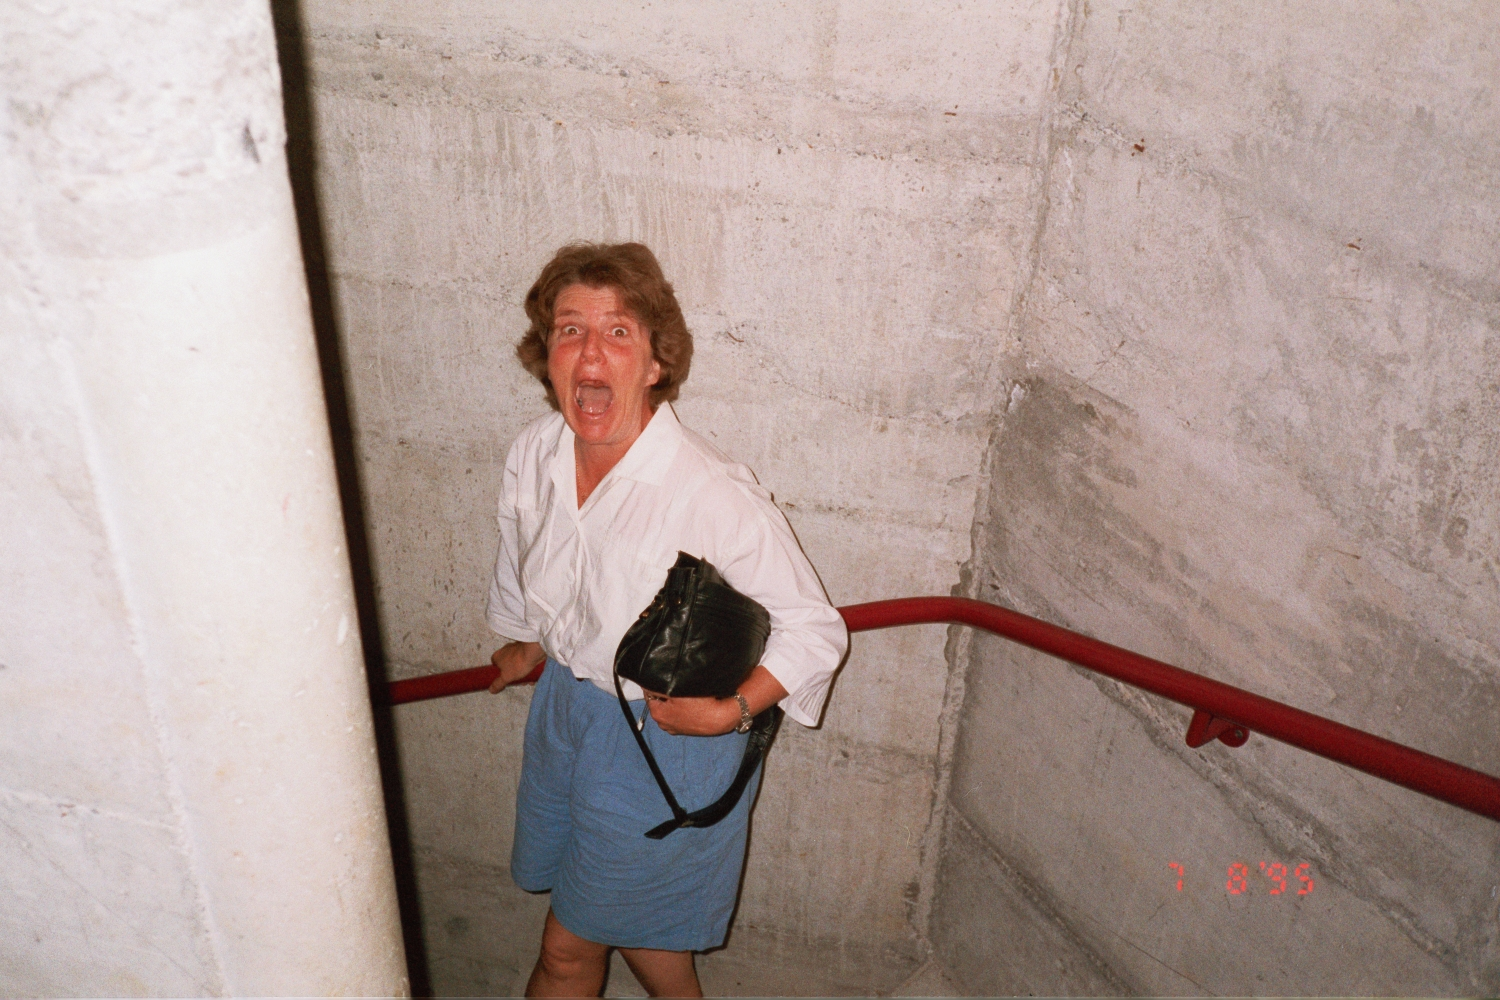 Lori Shearer in Austria in 1995